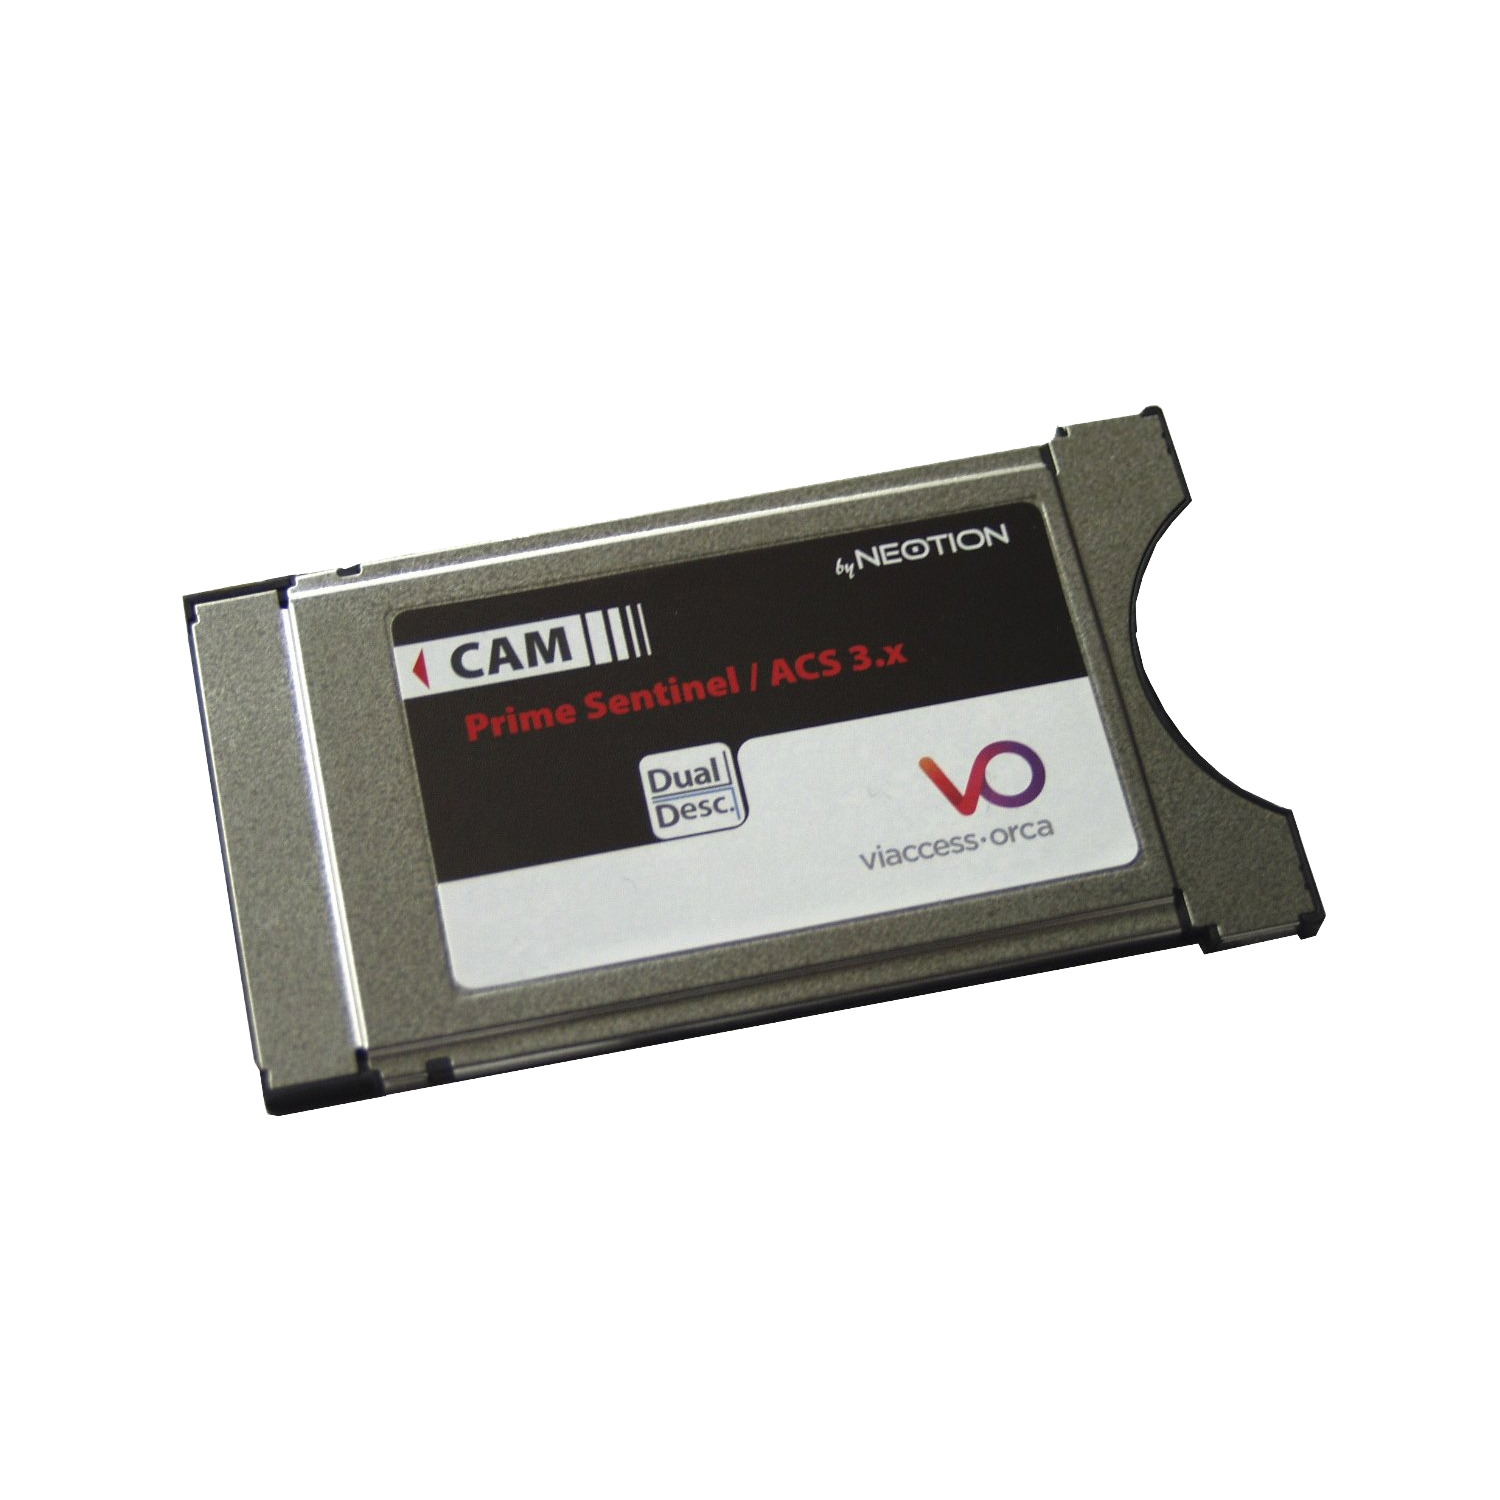 Neotion Viaccess Prime Sentinel / ACS 3.x Secure CI CI+ Modul CW 64 CS 64